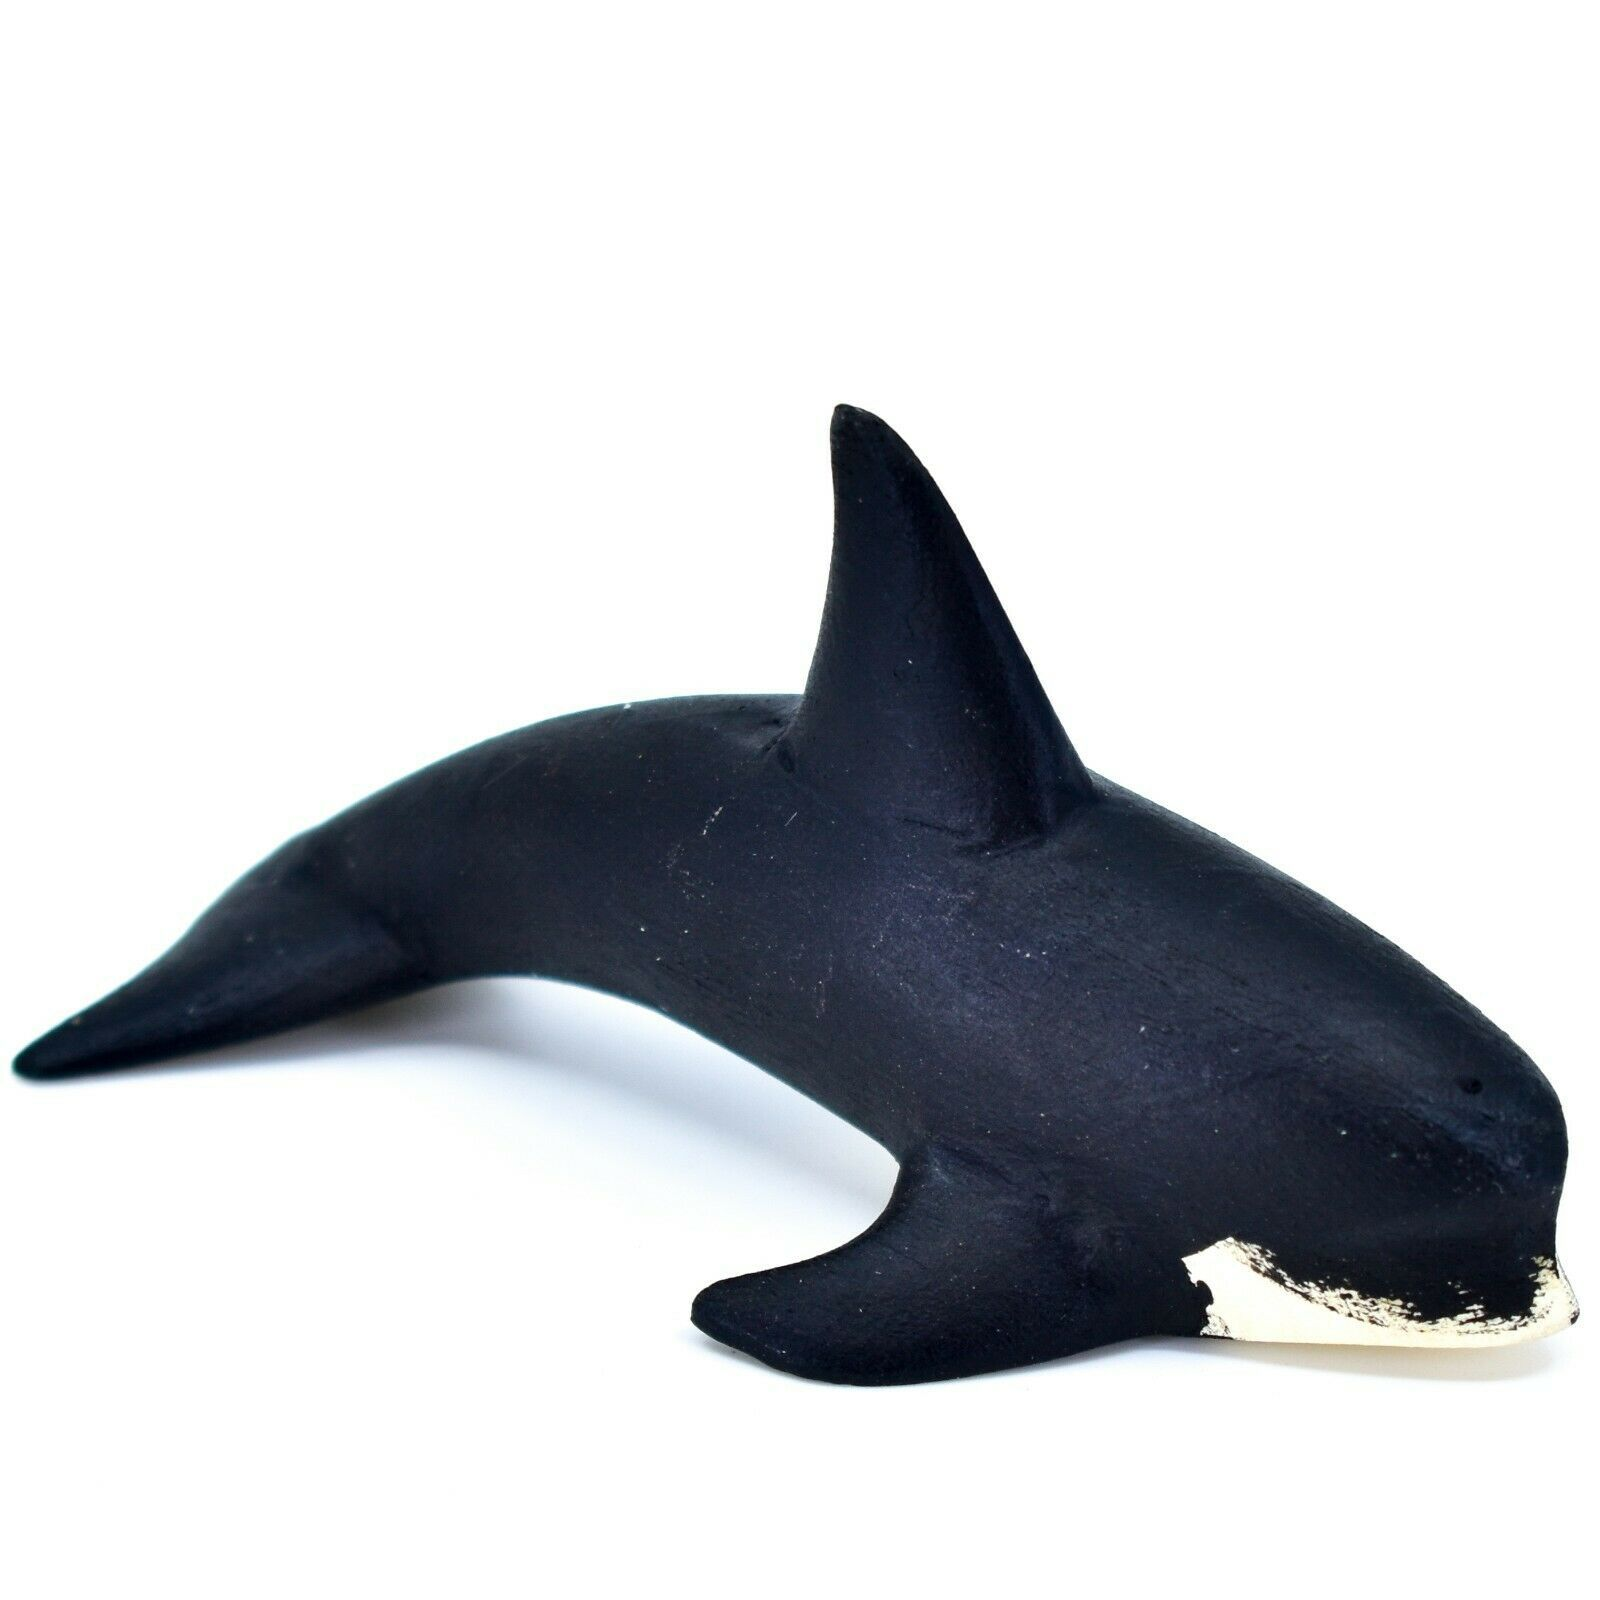 Handmade Alebrijes Oaxacan Wood Carved Black & White Orca Killer Whale Figurine